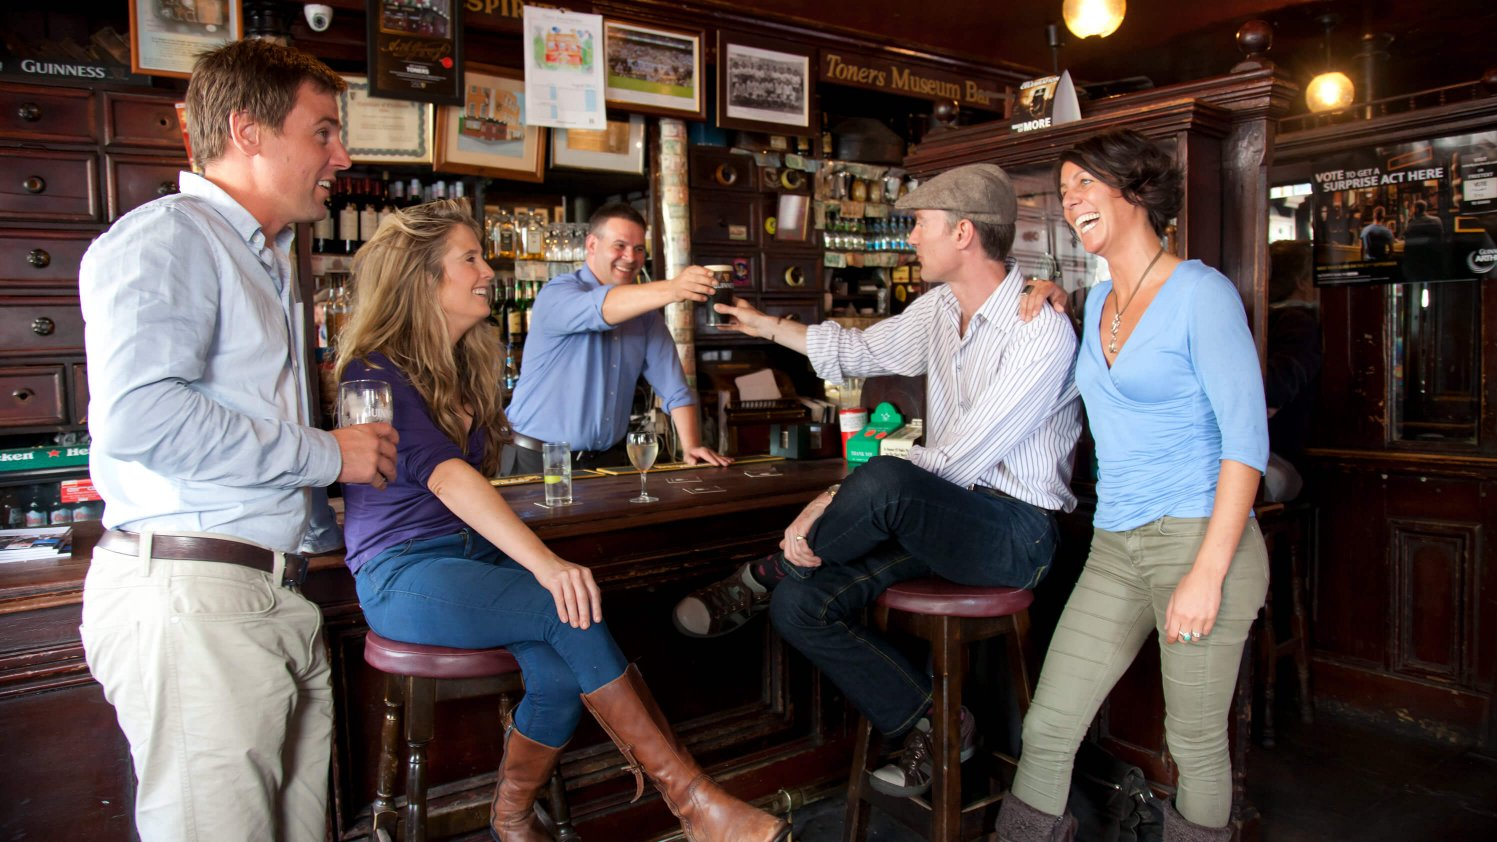 Group having fun with a barman in an Irish pub, saying cheers